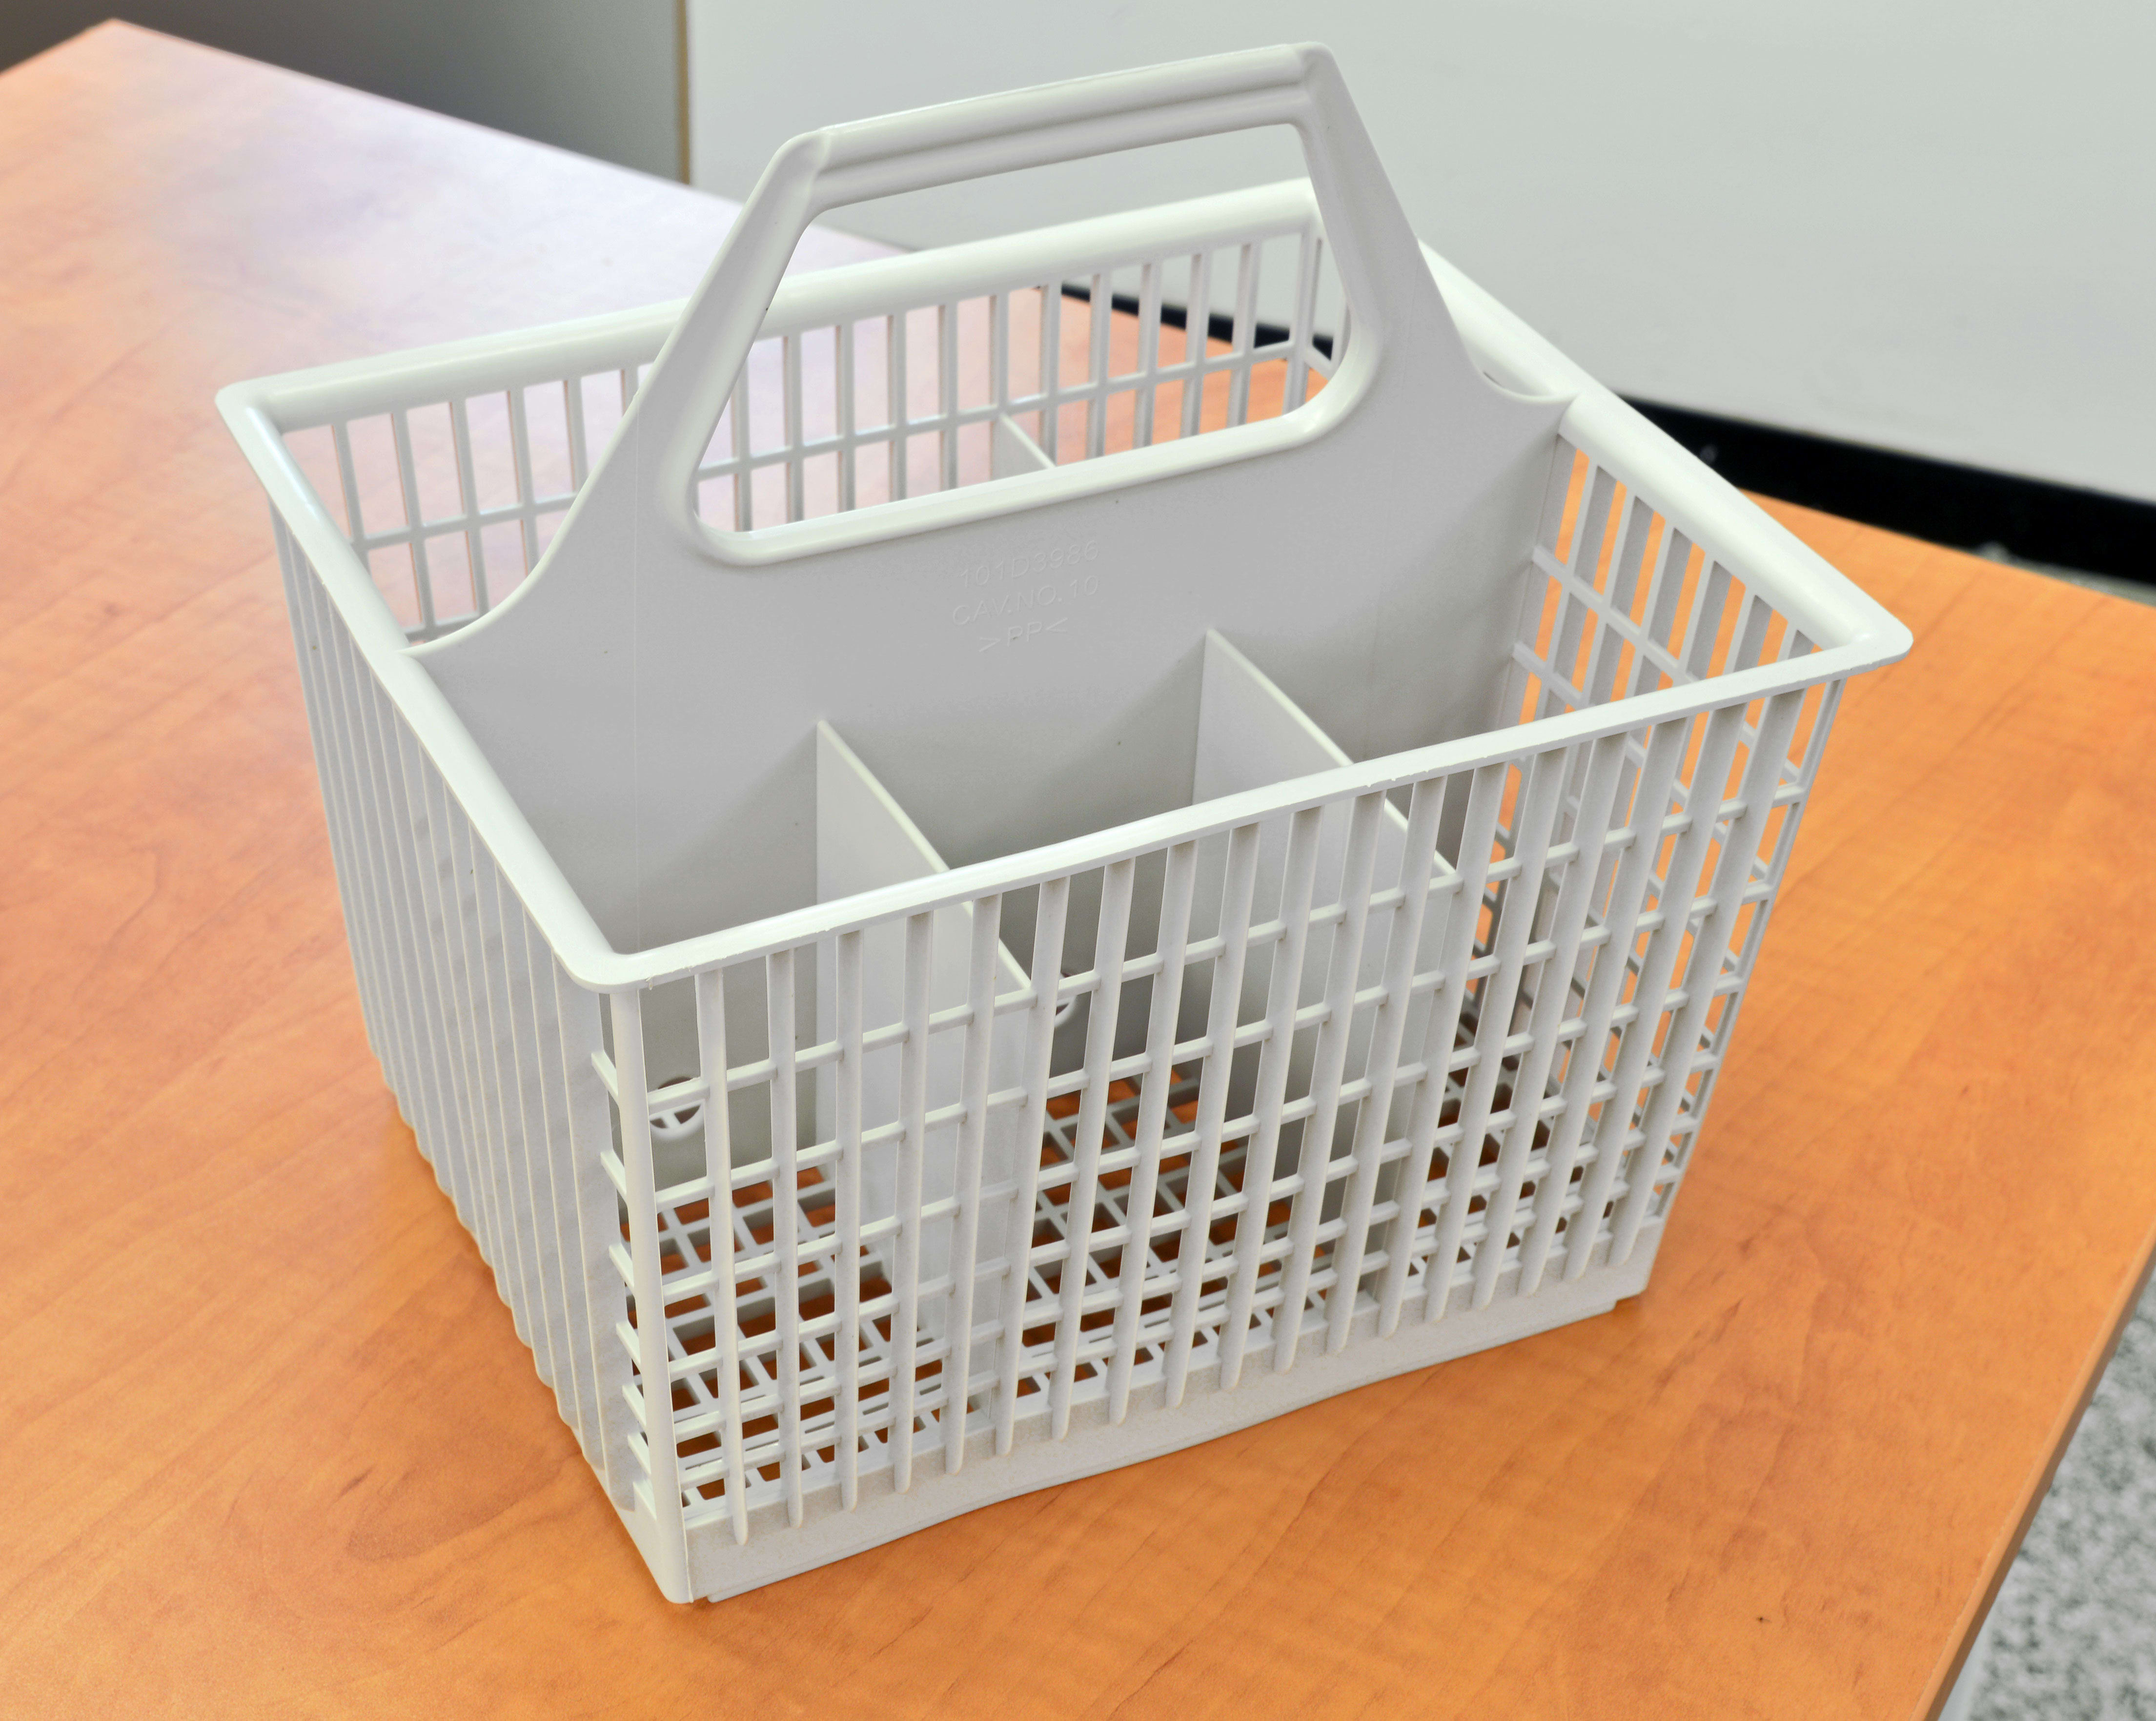 The GE GSC3500DWW's cutlery basket is easy to remove.